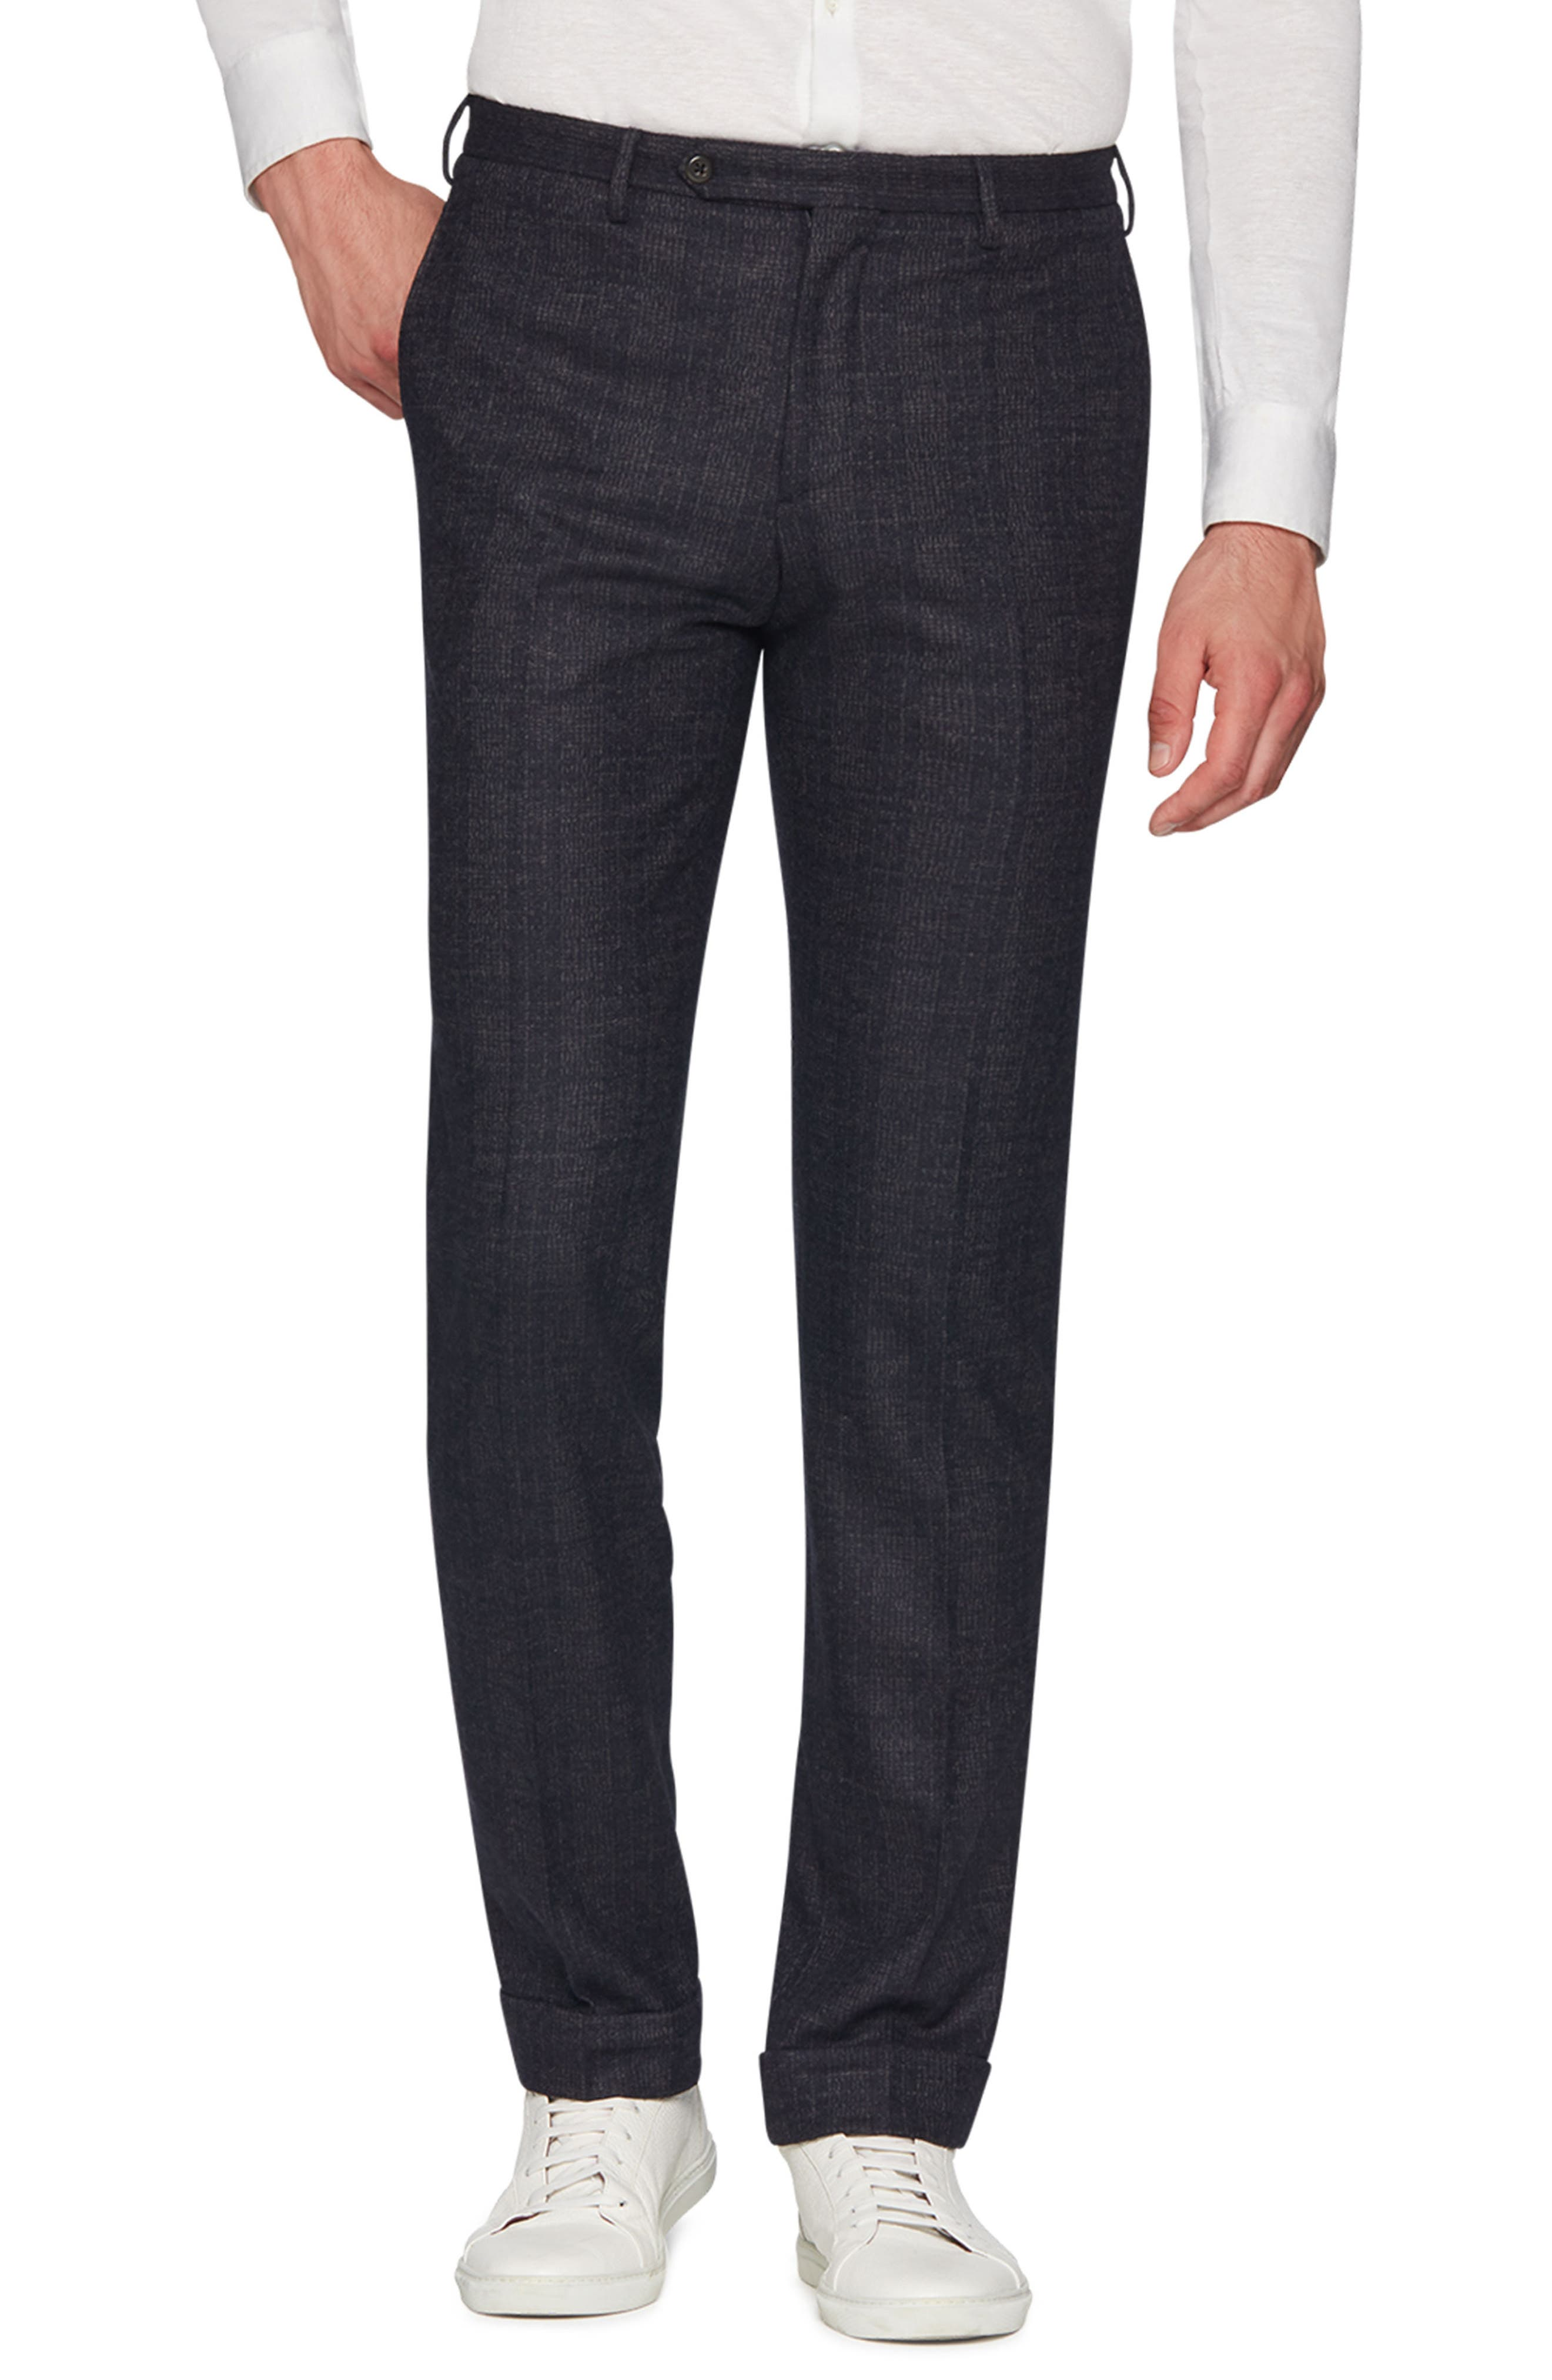 Josh Wool Blend Jersey Trousers,                         Main,                         color, NAVY